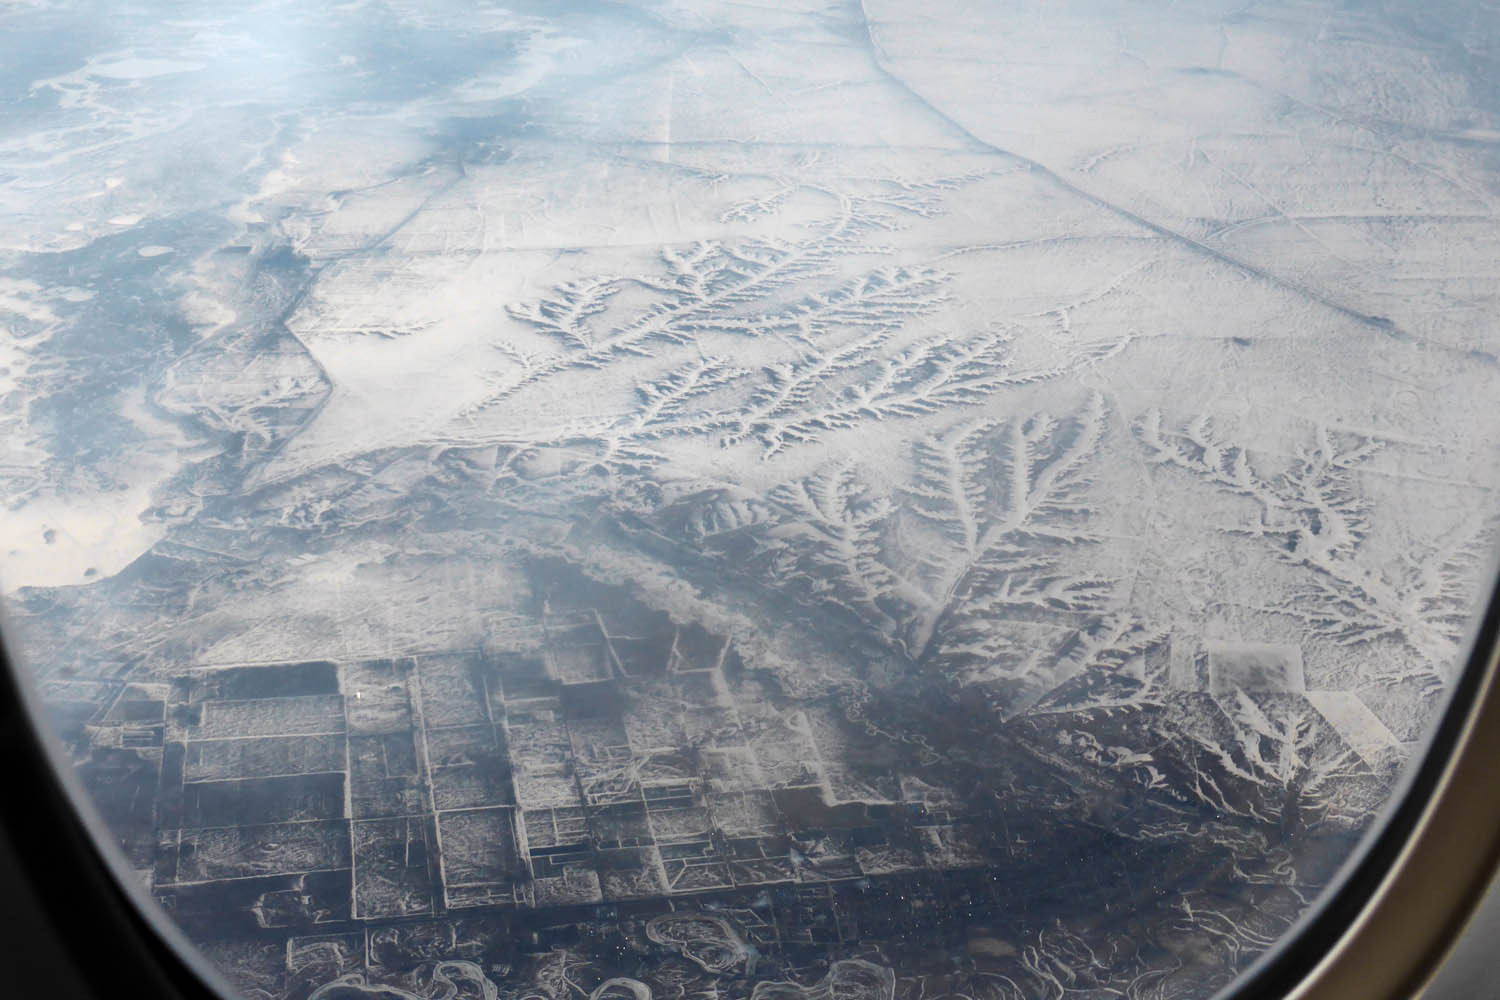 Frozen sub-Arctic landscape, Russia (or maybe Mongolia)